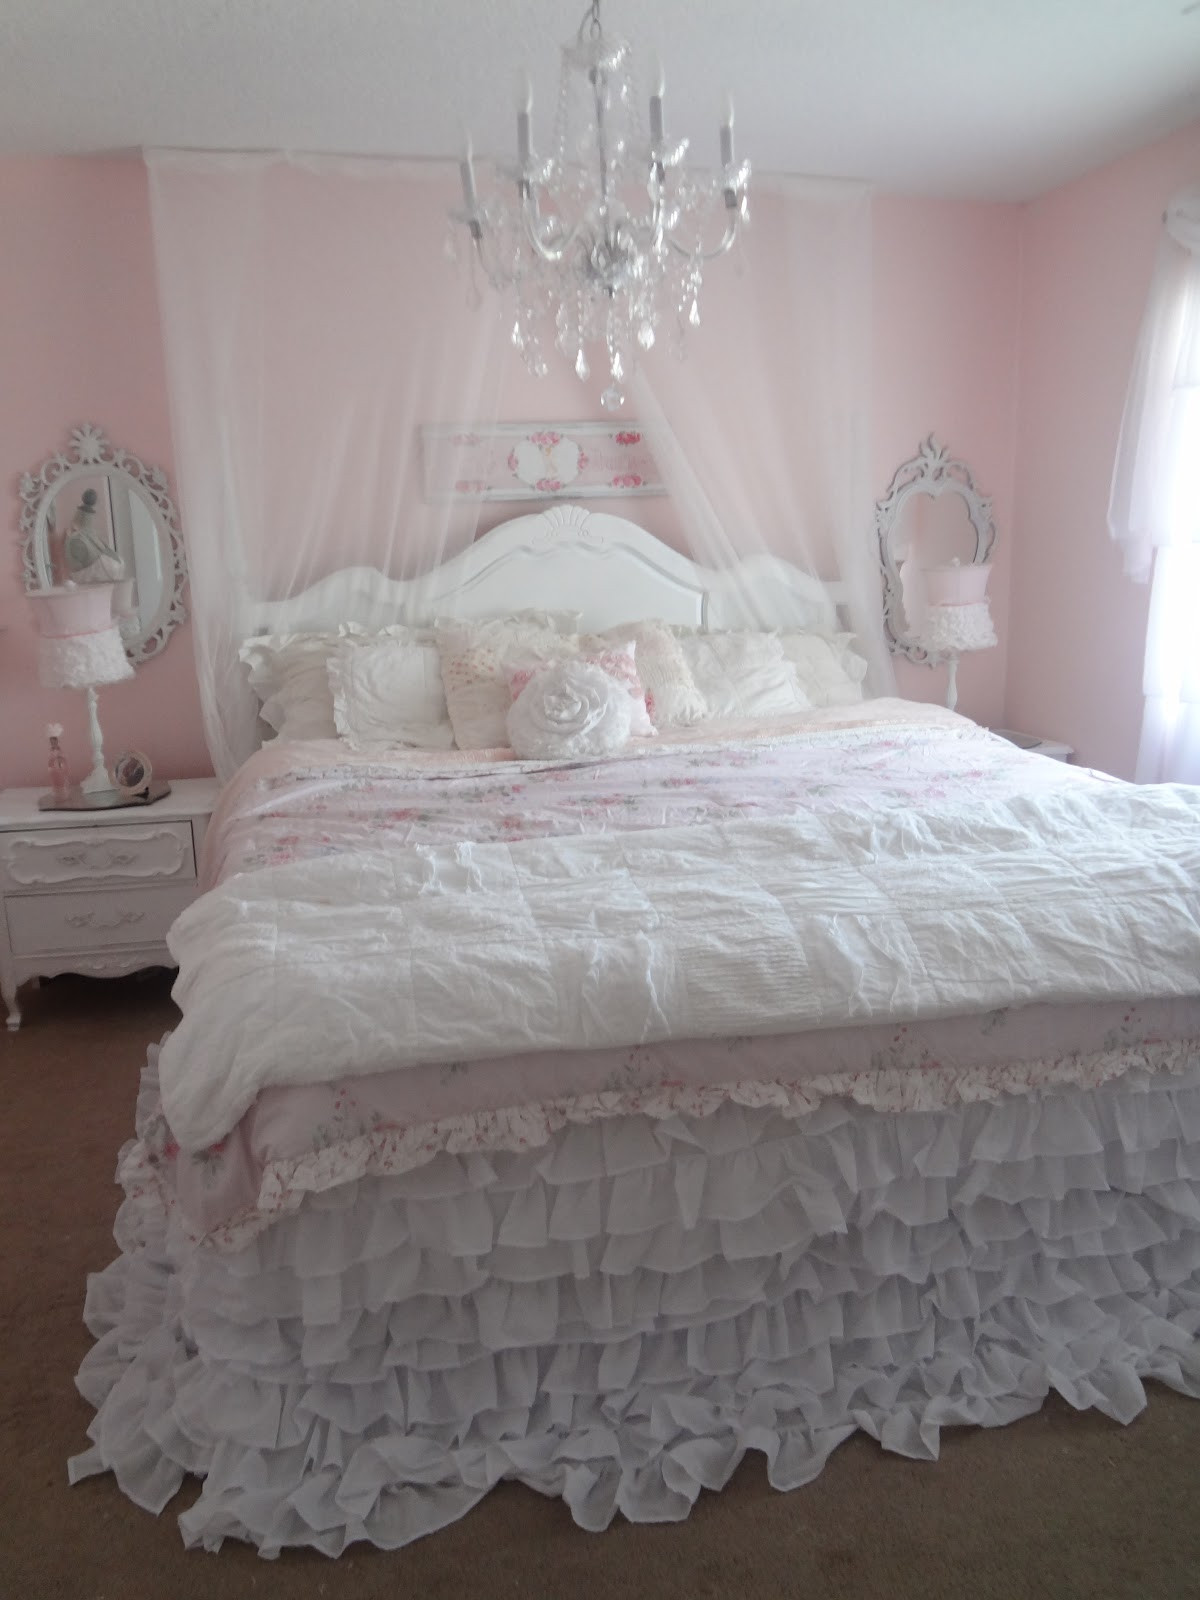 Best ideas about Shabby Chic Bedding . Save or Pin Not So Shabby Shabby Chic My new ruffly bedding Now.